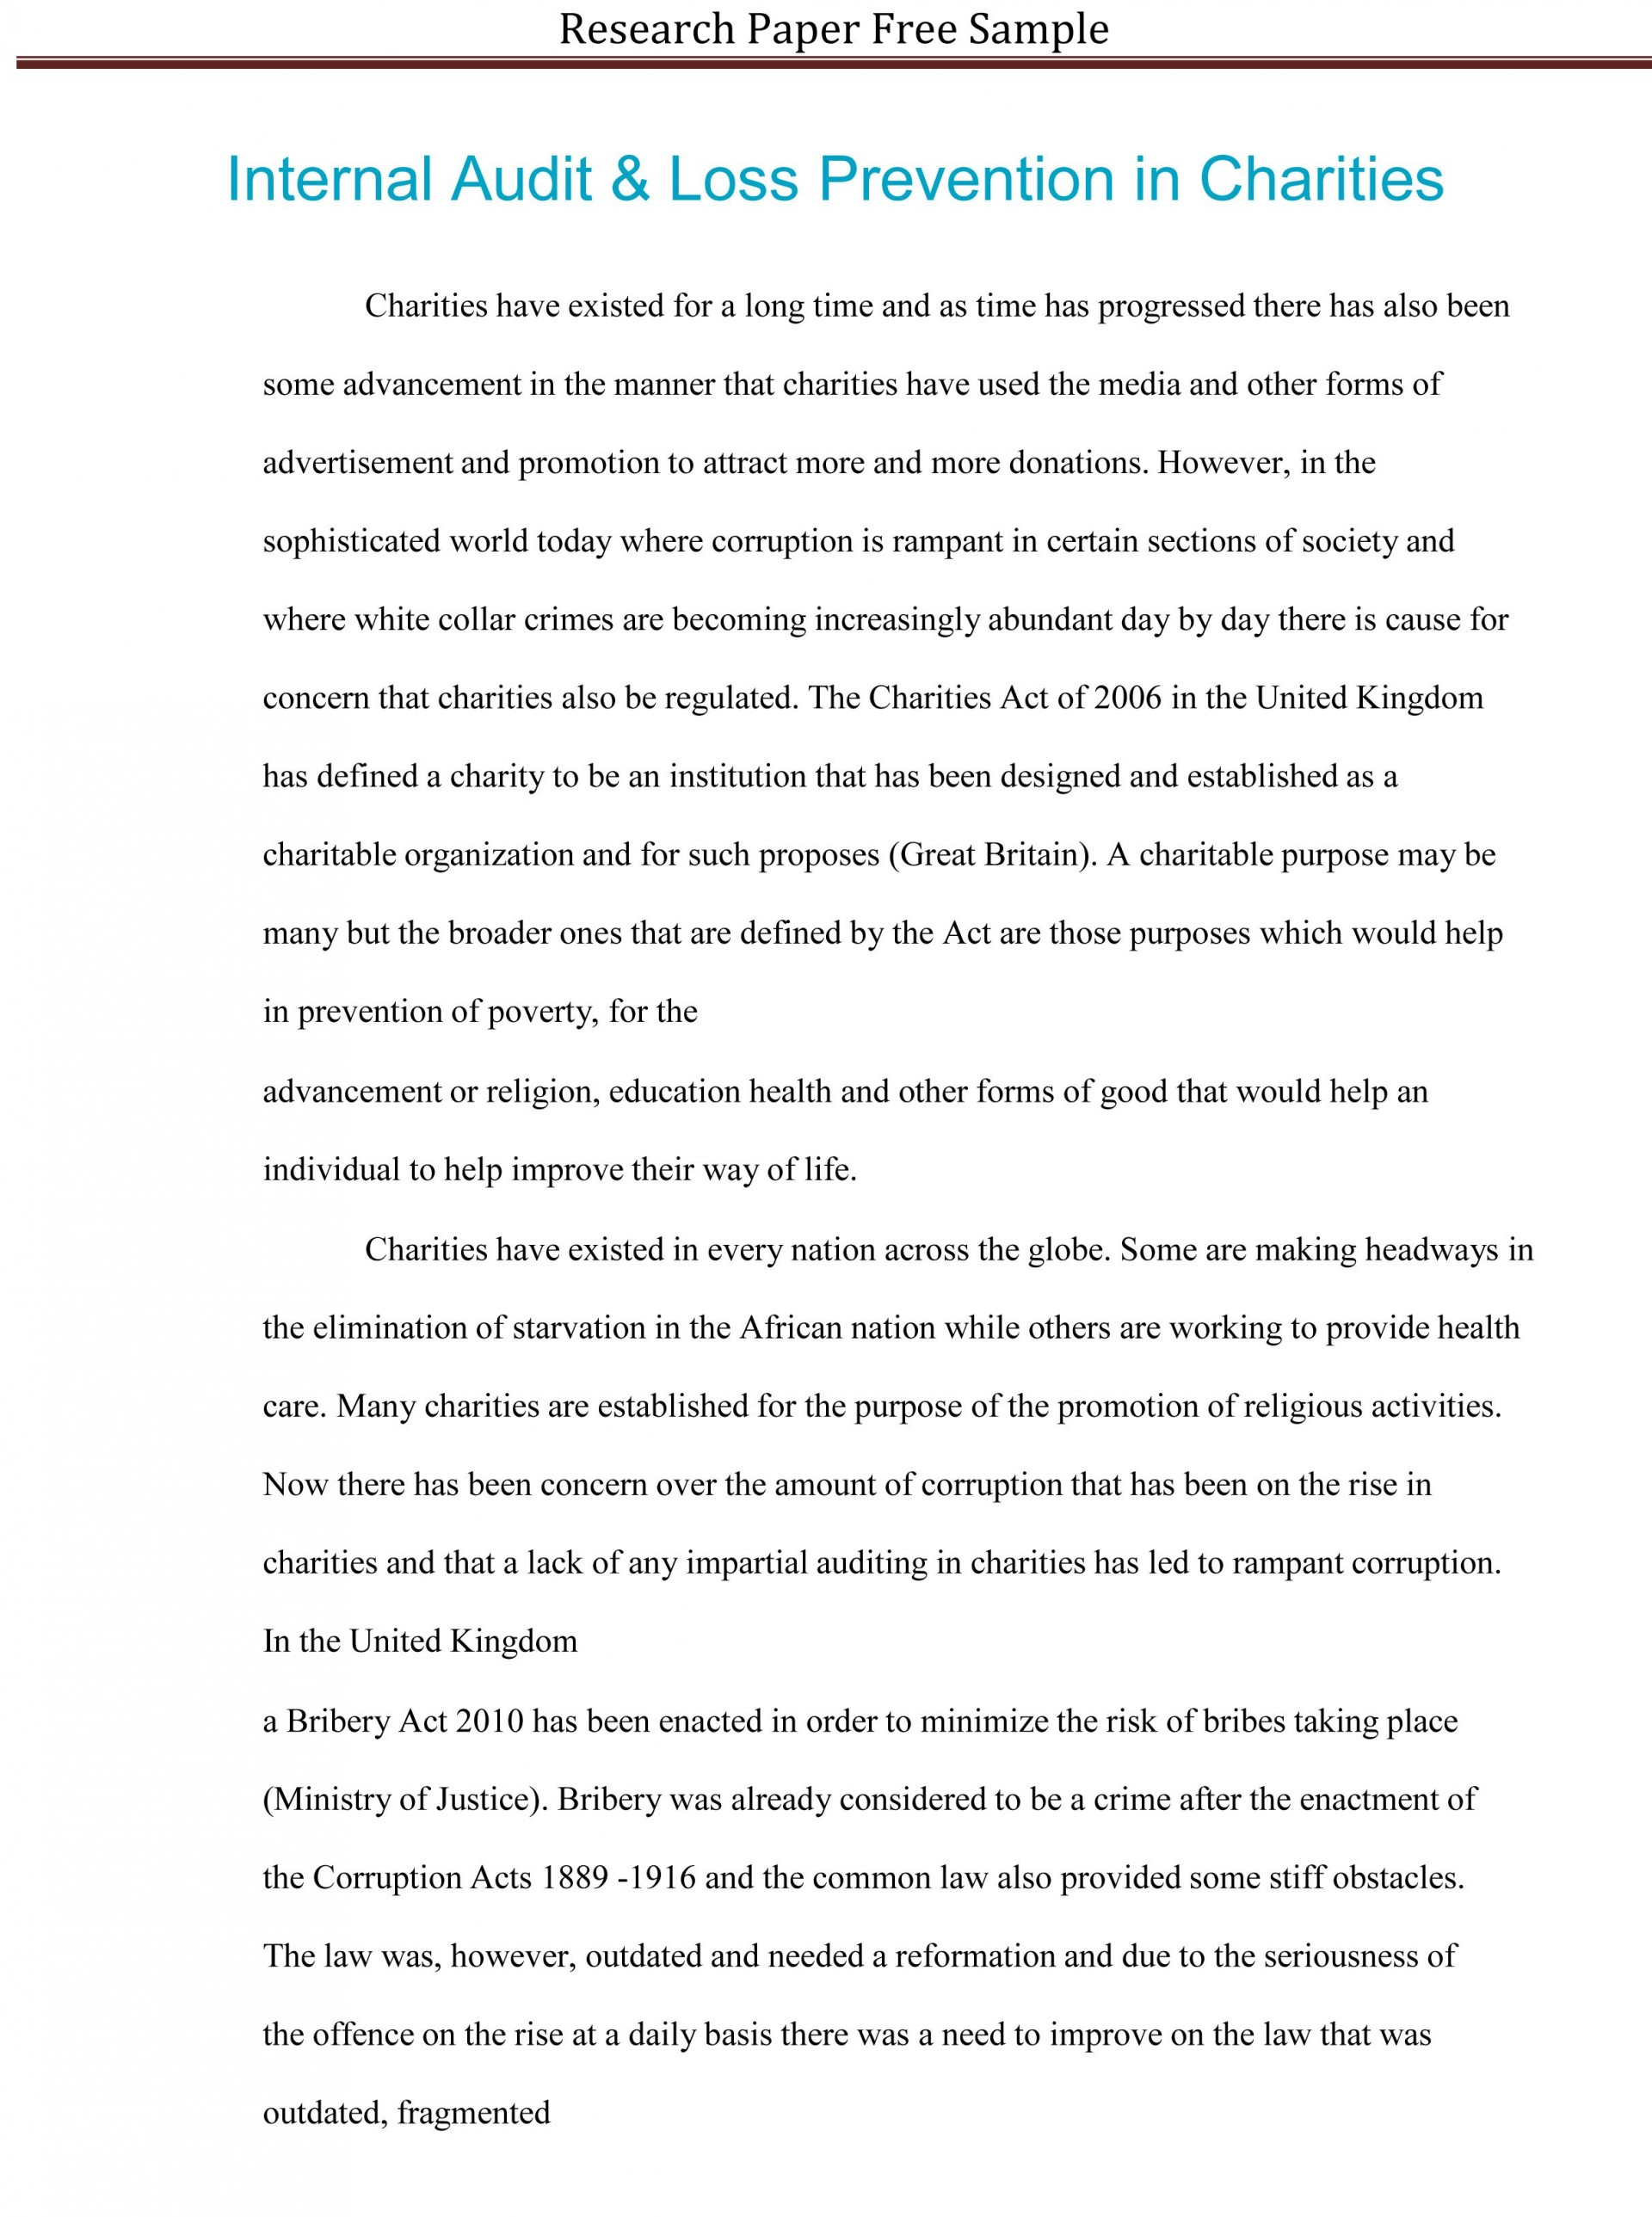 002 Research Paper In Unusual Economics Related To Home Topics On Development Pdf 1920